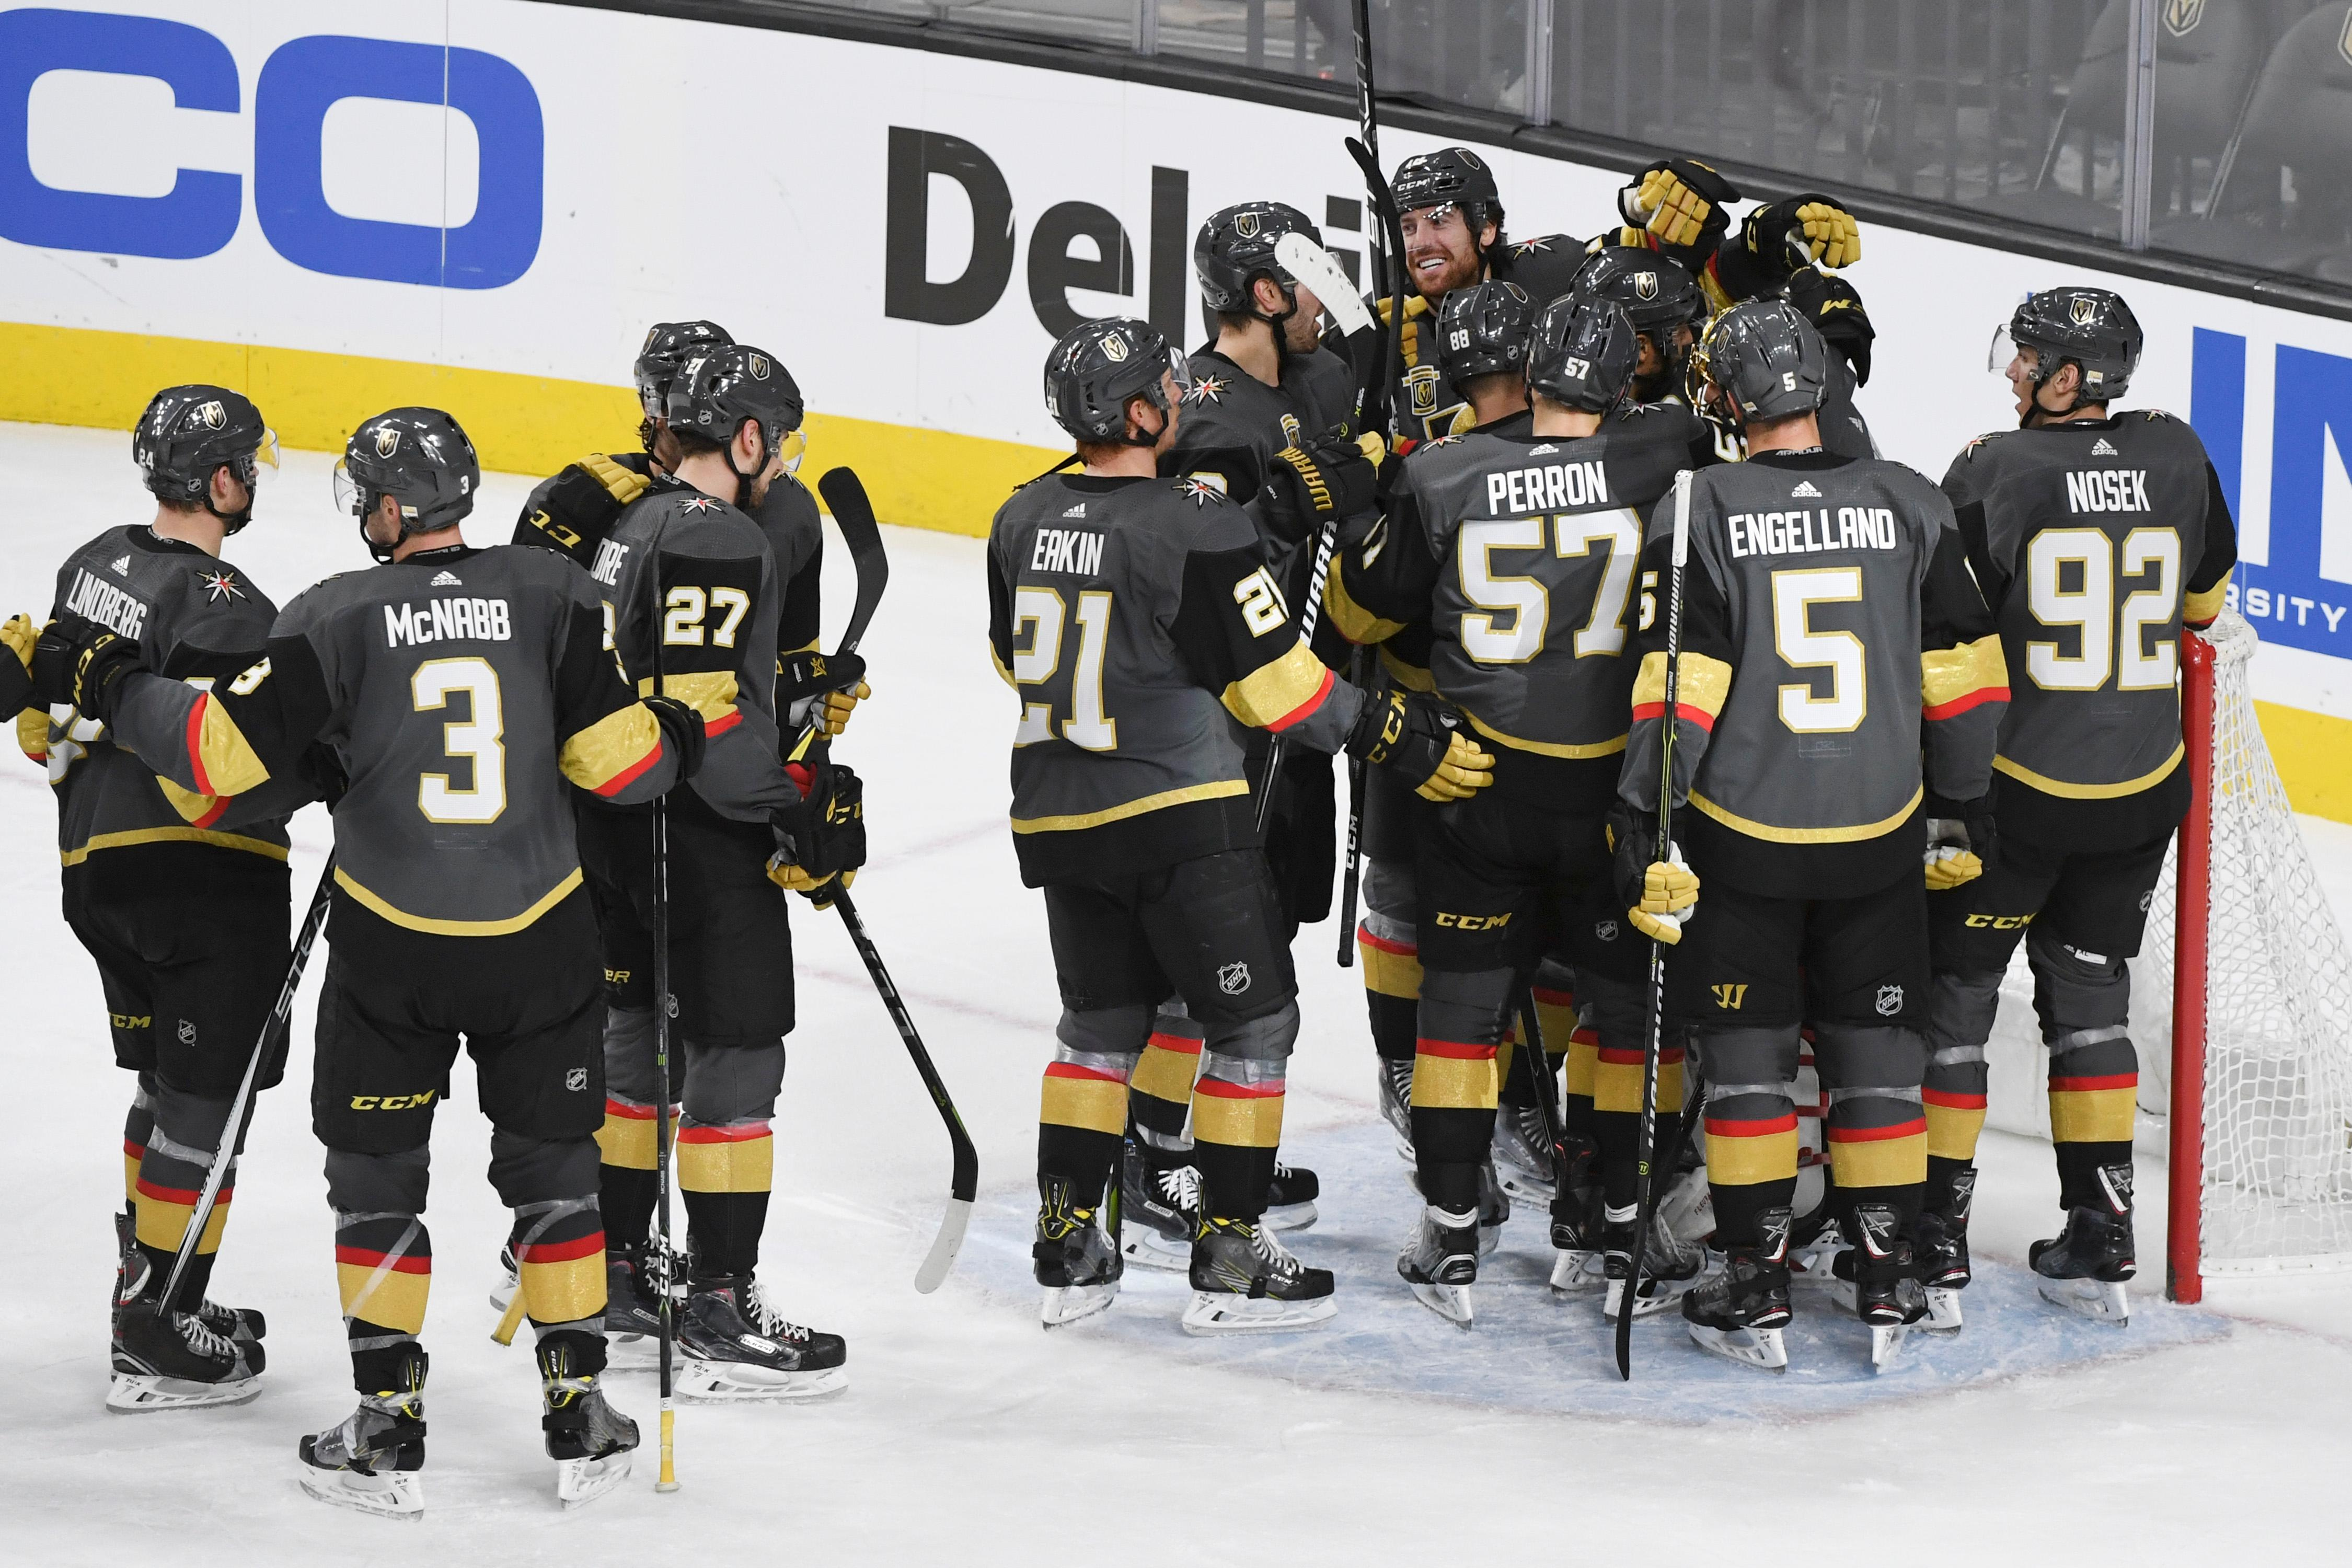 The Vegas Golden Knights celebrate the 3-0 win against the Washington Capitals during their NHL hockey game Saturday, December 23, 2017, at T-Mobile Arena in Las Vegas.  CREDIT: Sam Morris/Las Vegas News Bureau